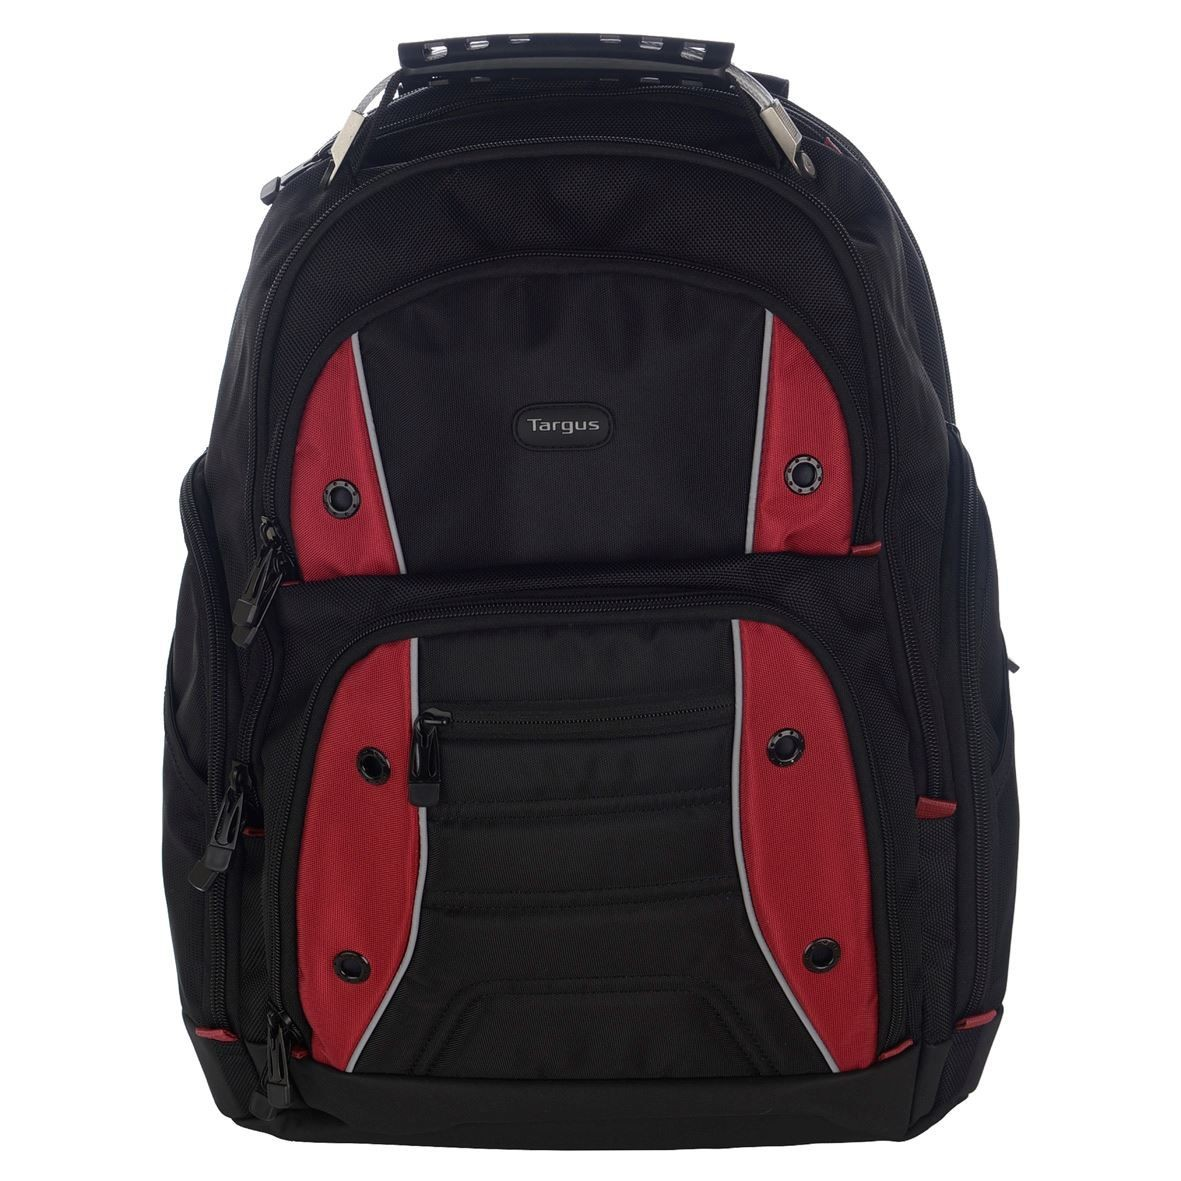 Targus Drifter 16 Laptop Backpack Black/Red